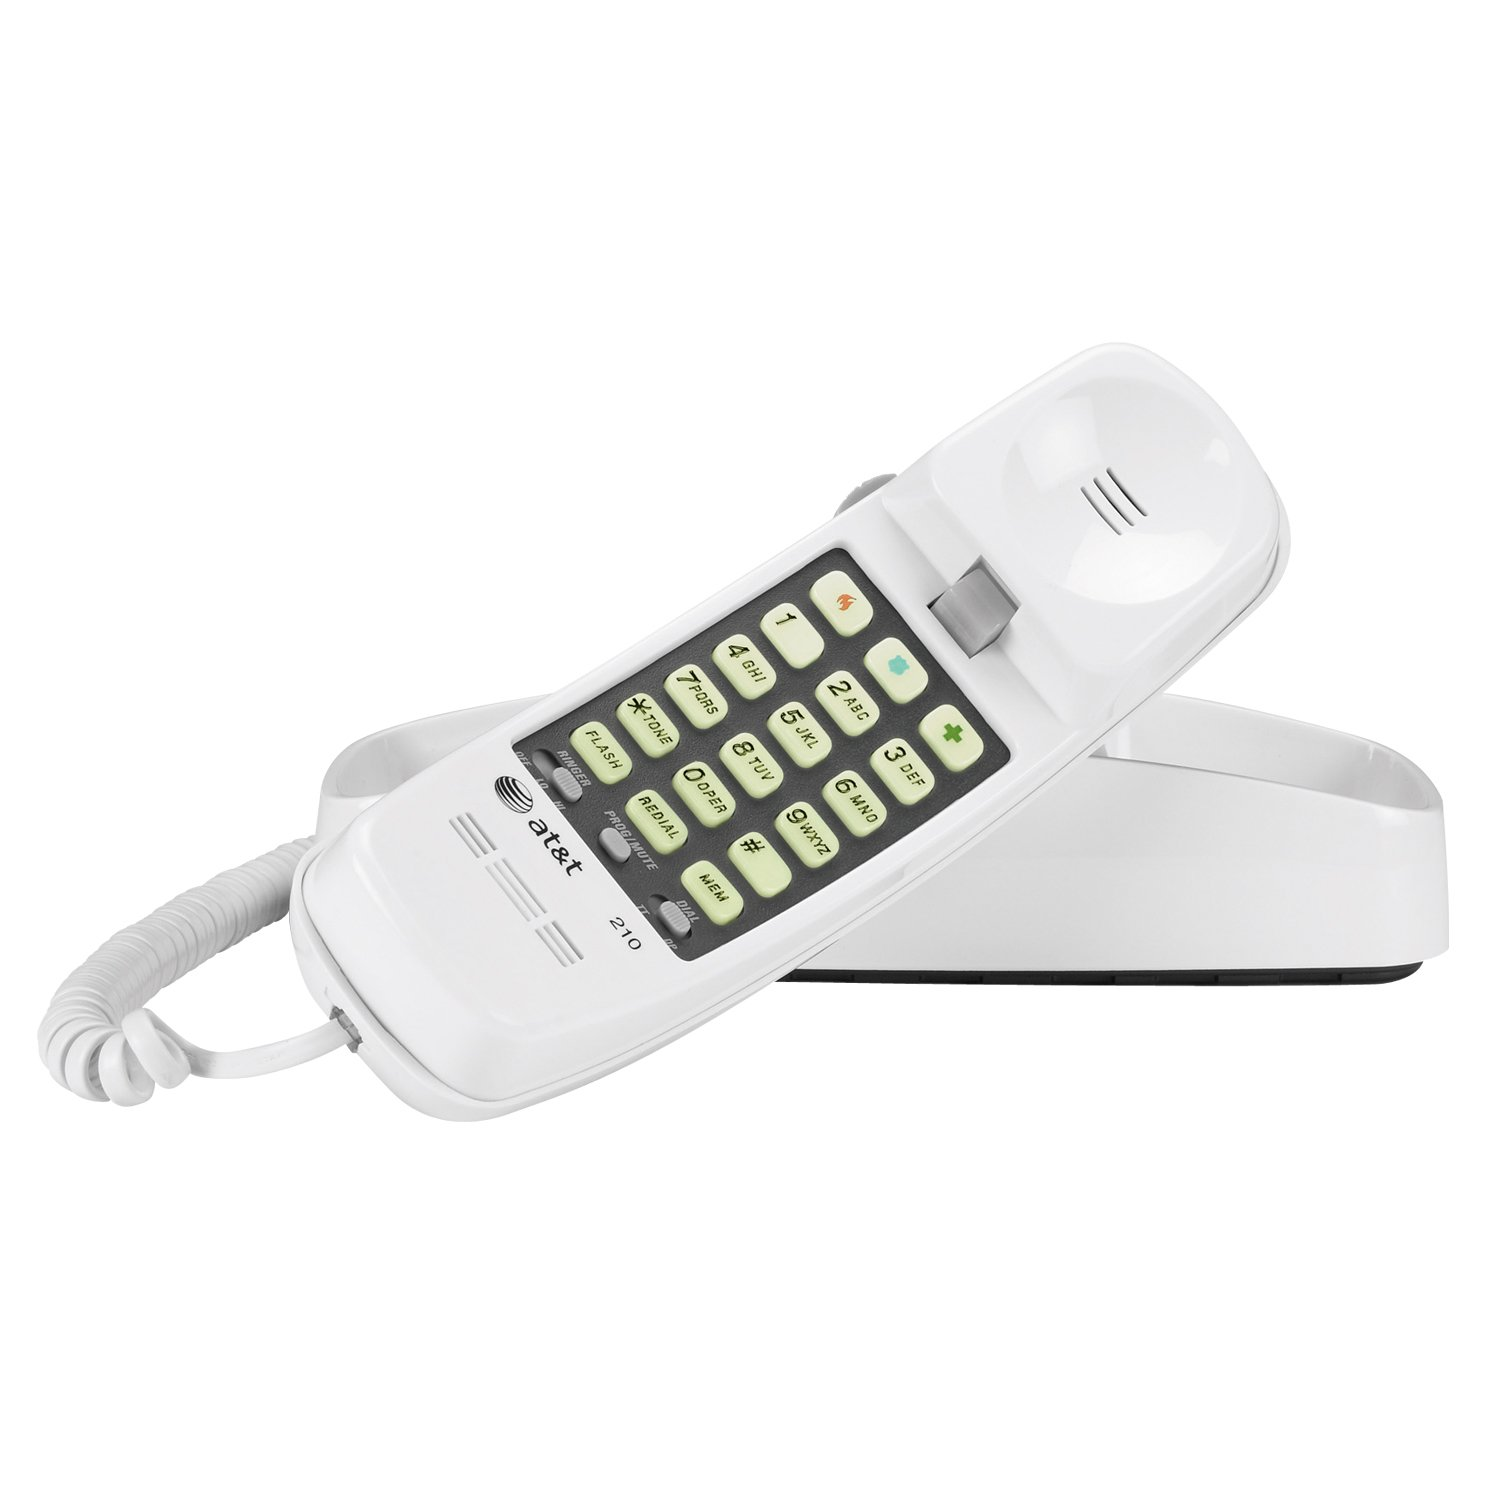 Advanced American Telephones 210WH AT&T 210M Basic Trimline Corded Phone, No AC Power Required, Wall-Mountable, White by AT&T